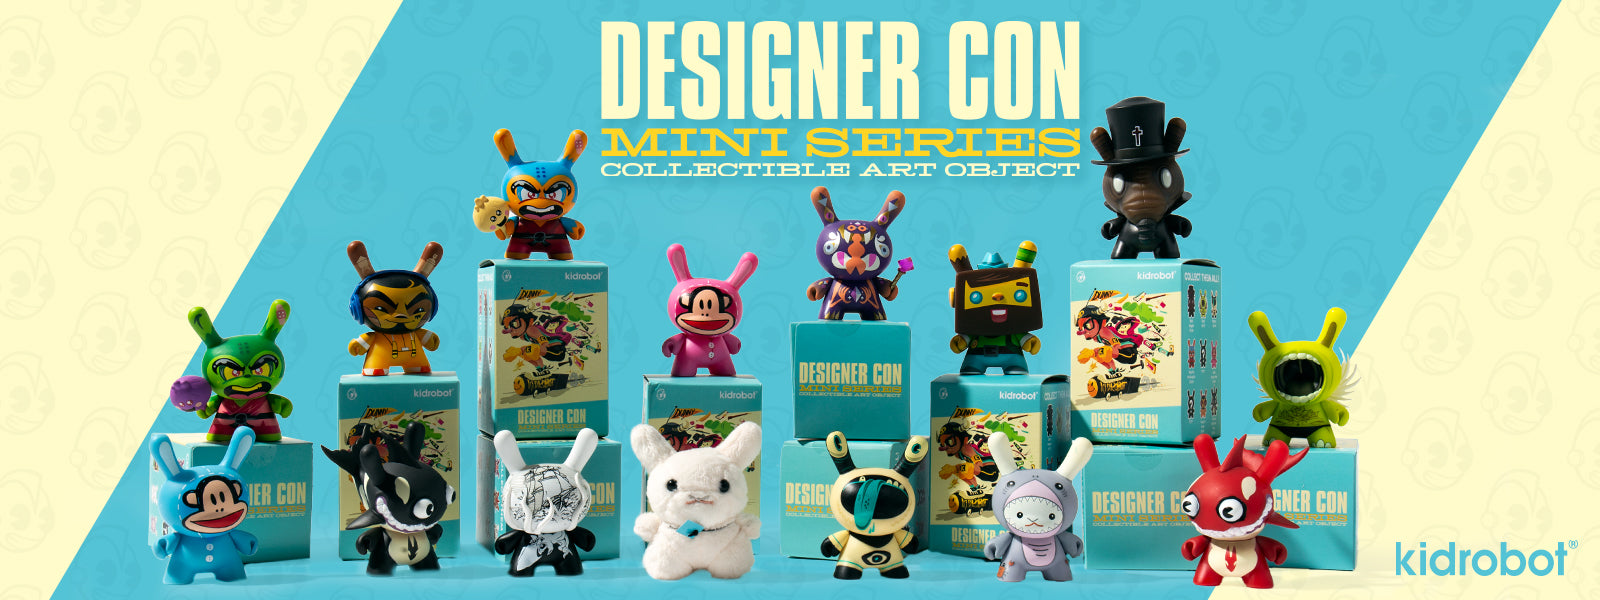 Dunny Art Figures by Kidrobot - Designer Con DCON Dunny Mini Series